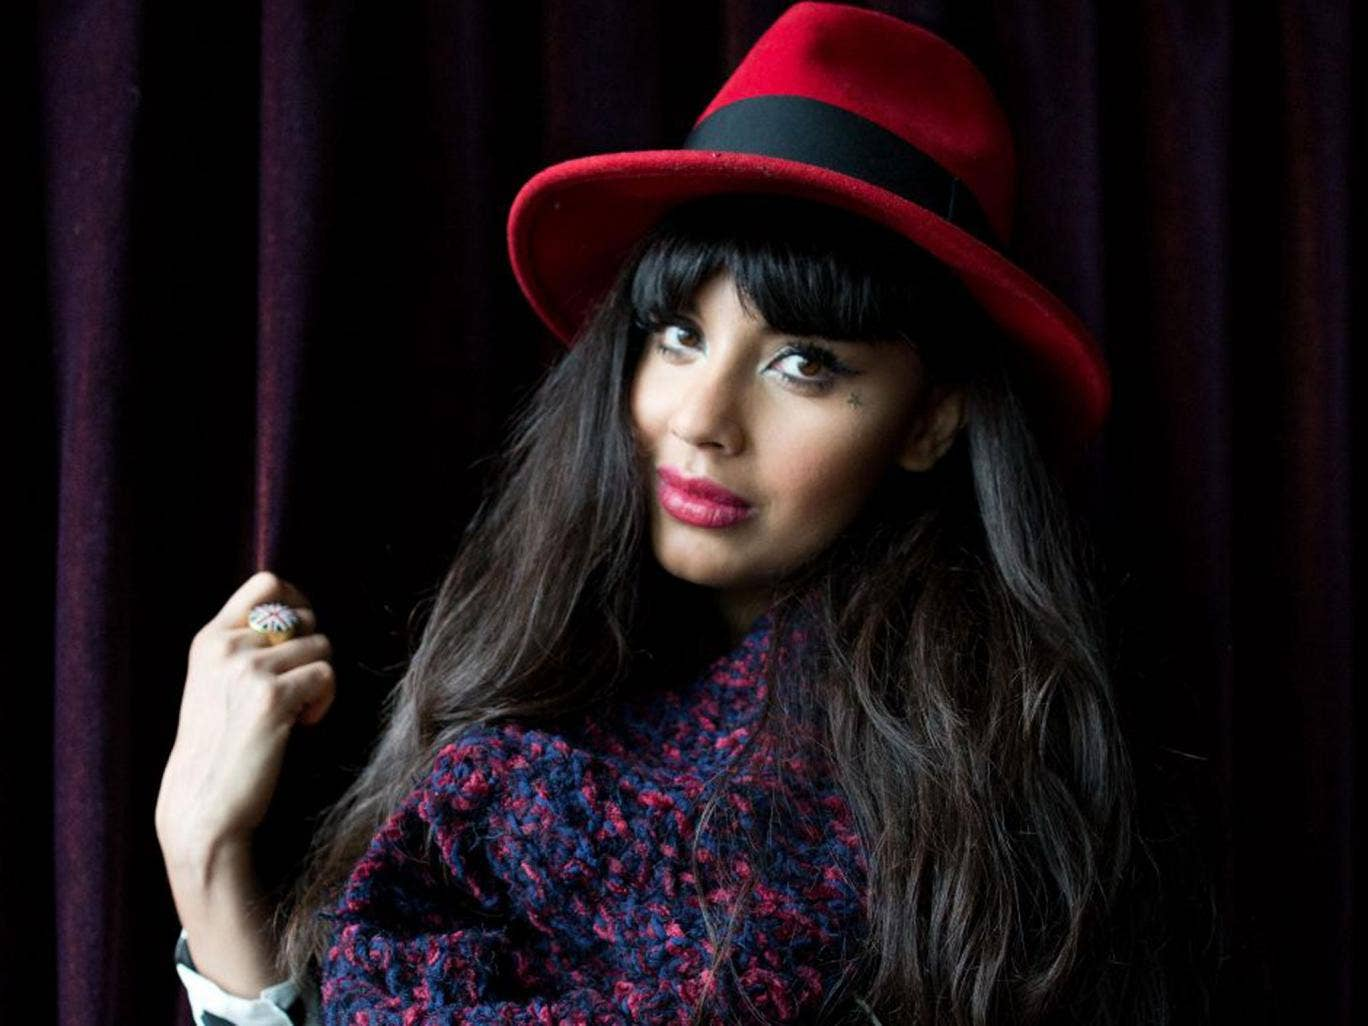 Jameela Jamil came to prominence presenting on Channel 4's youth strand, T4